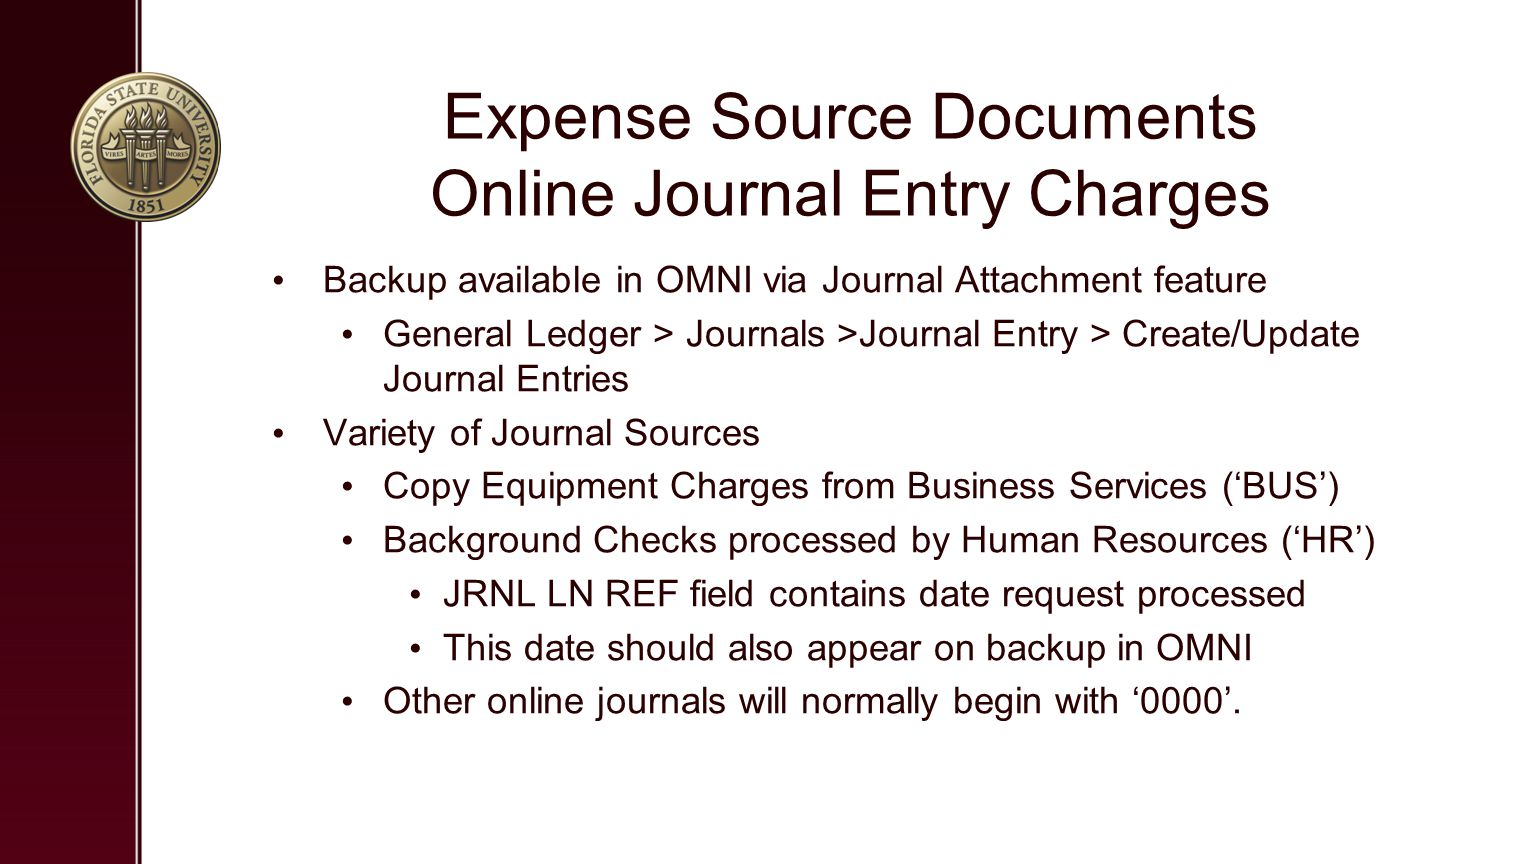 Expense Source Documents Online Journal Entry Charges Backup available in OMNI via Journal Attachment feature General Ledger > Journals >Journal Entry > Create/Update Journal Entries Variety of Journal Sources Copy Equipment Charges from Business Services ('BUS') Background Checks processed by Human Resources ('HR') JRNL LN REF field contains date request processed This date should also appear on backup in OMNI Other online journals will normally begin with '0000'.